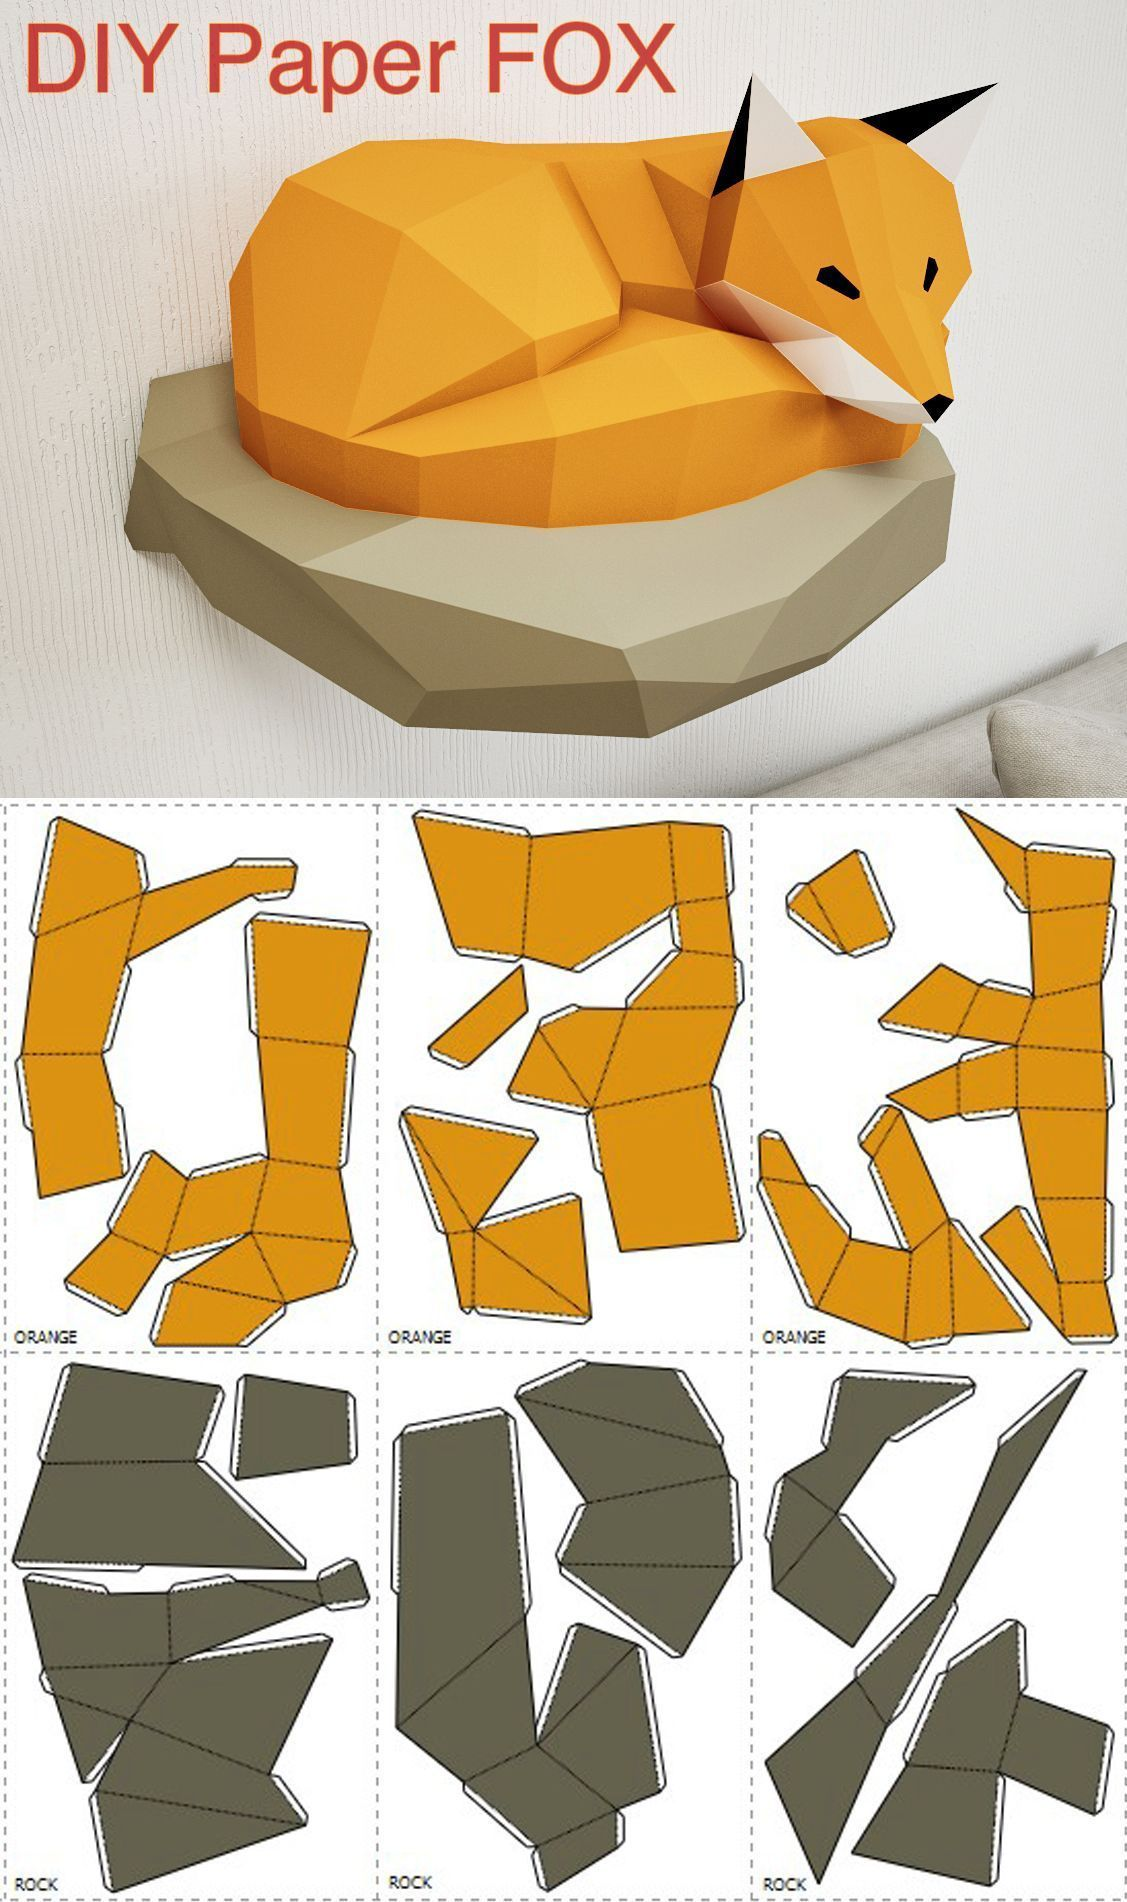 Diy Papercraft Fox 3d Paper Model On The Wall Home Decor Origami Ratrat Origamiorigami Rat Diagram Guide Oxygami Craft Template